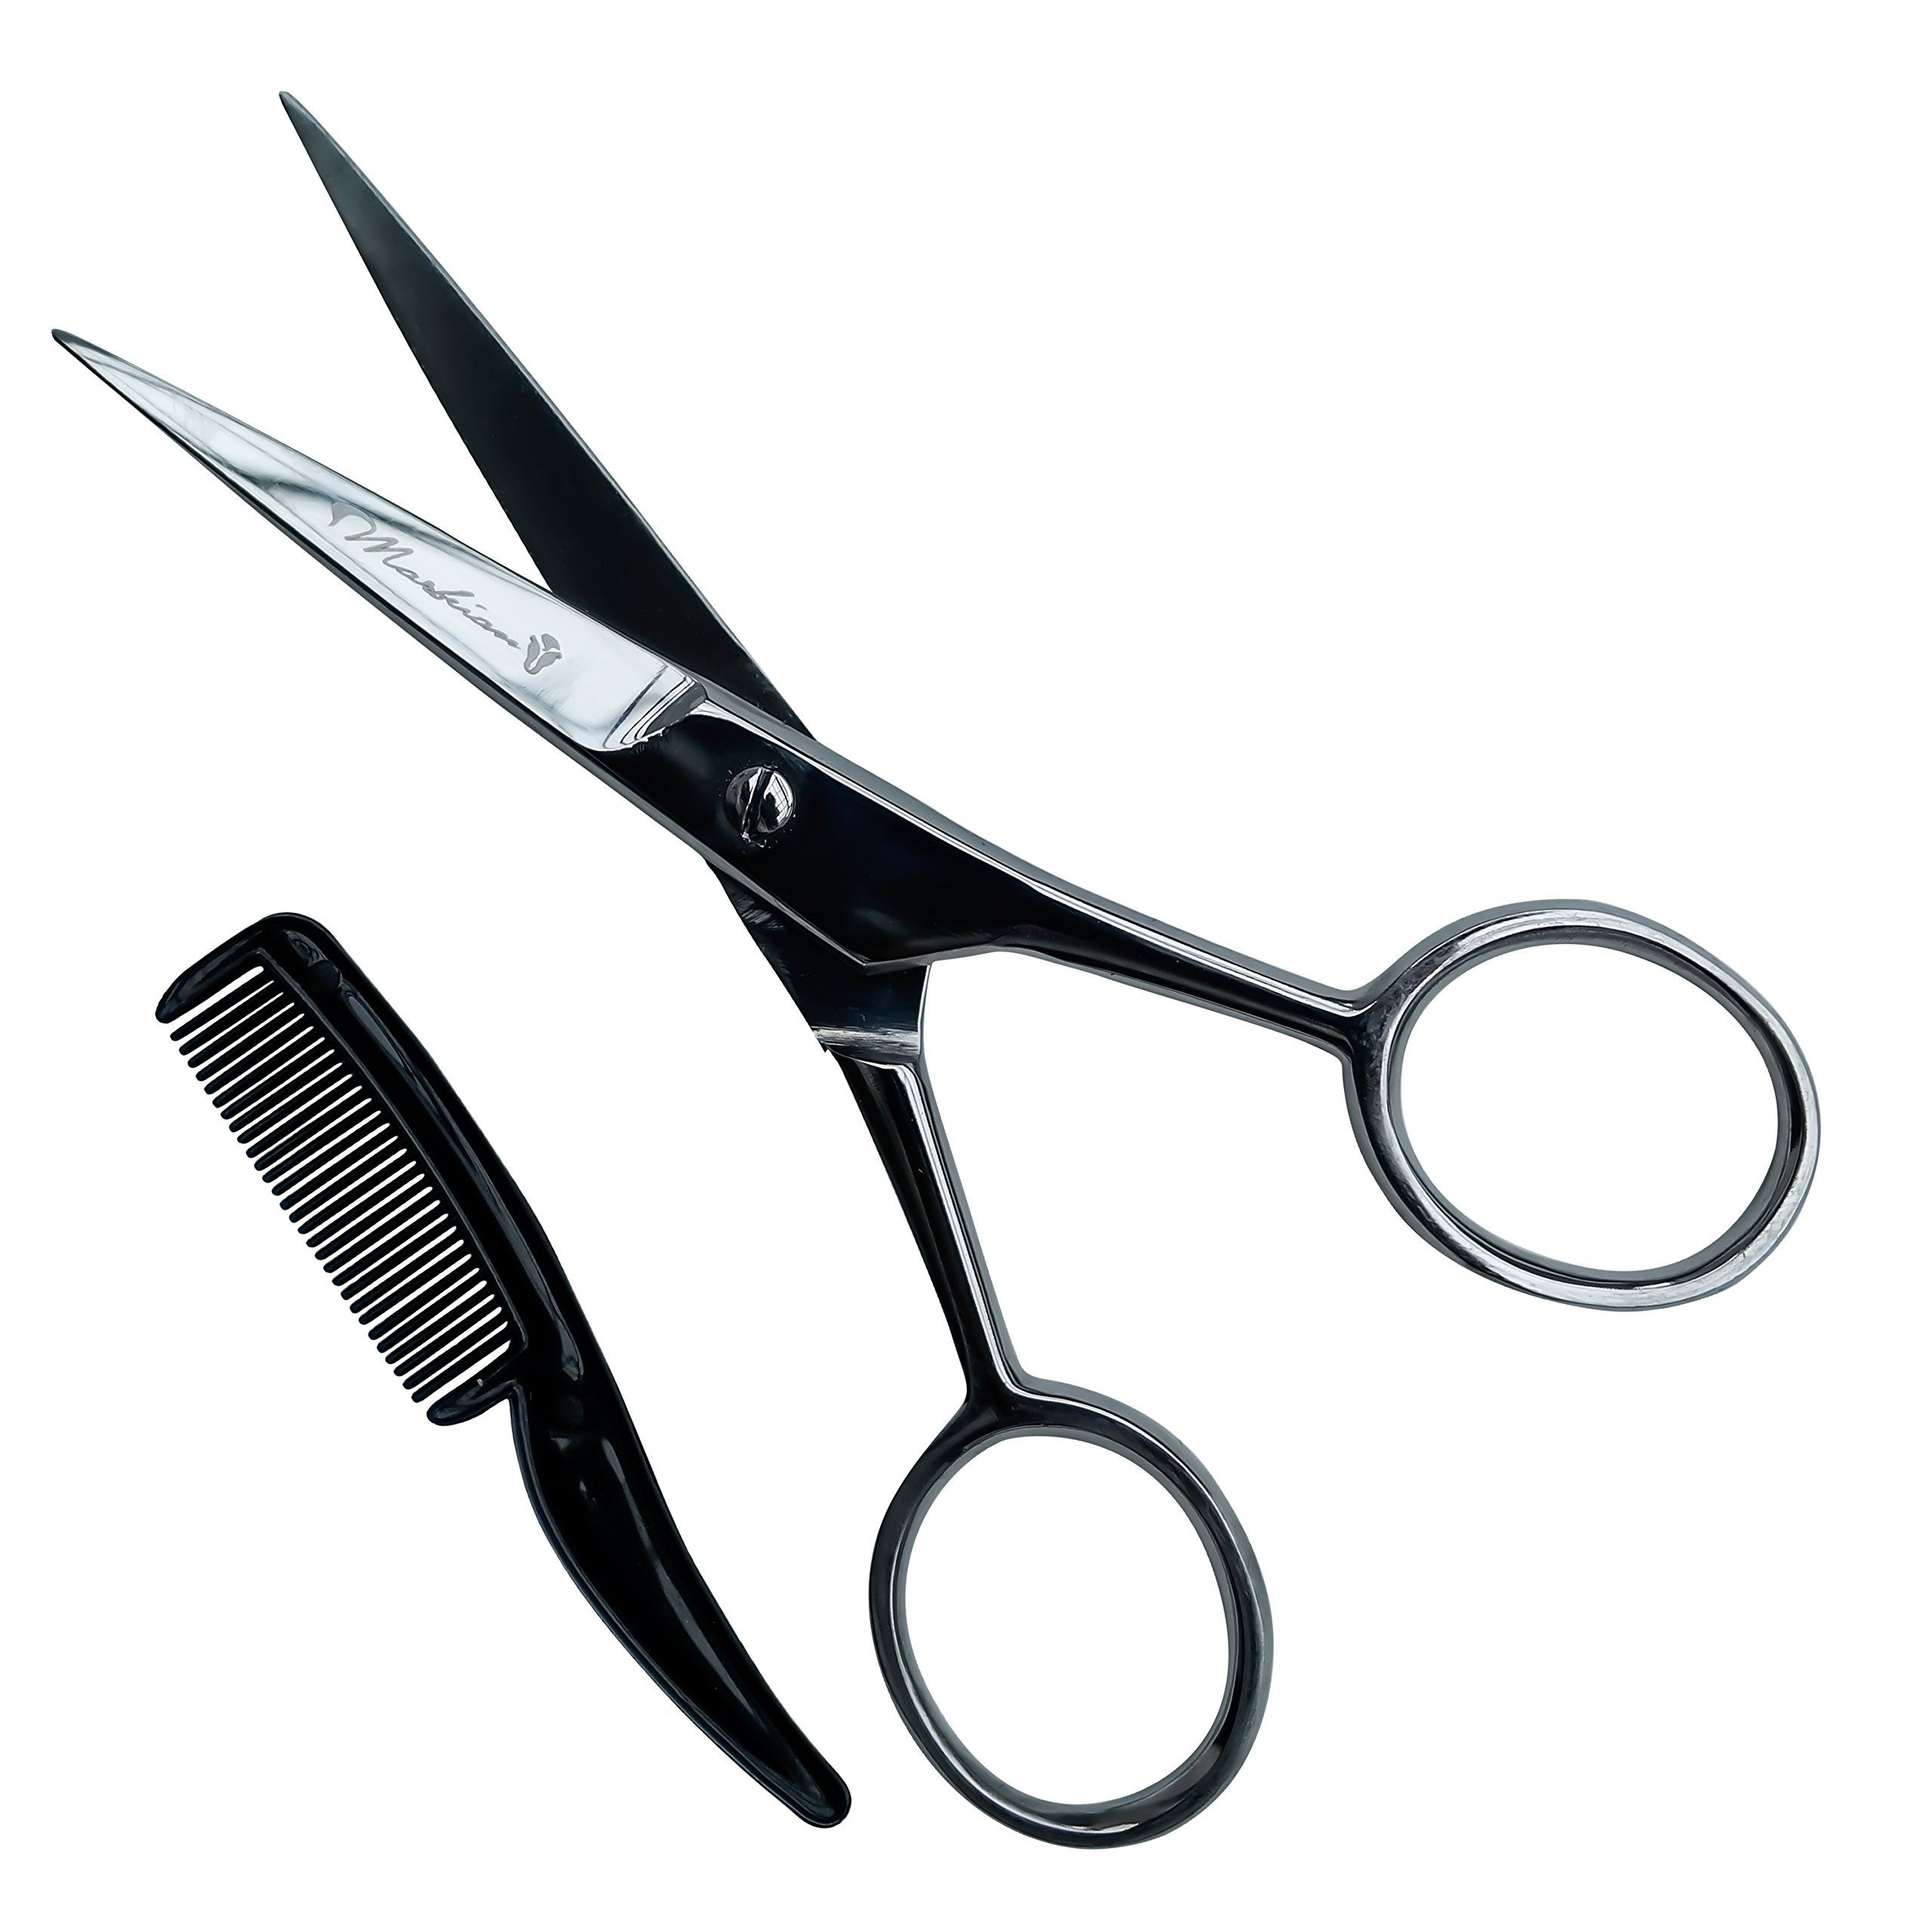 Beard scissors with comb by marbeian this set makes beard